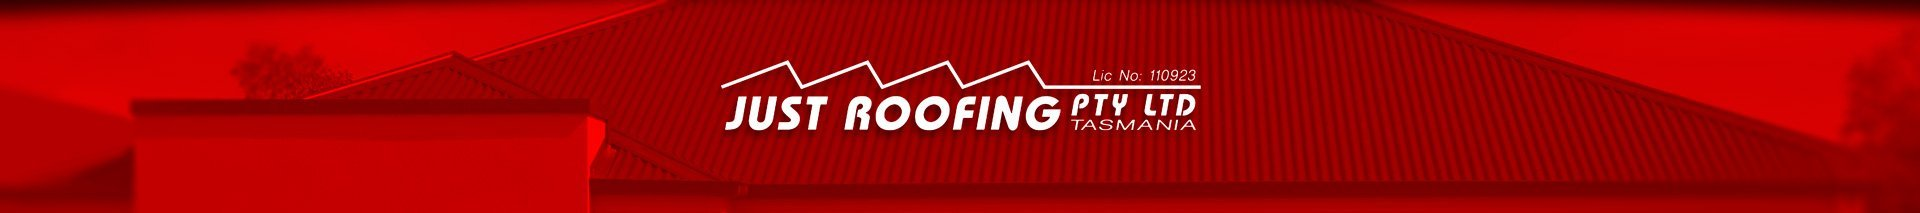 Roof Experts Hobart Just Roofing Just Roofing